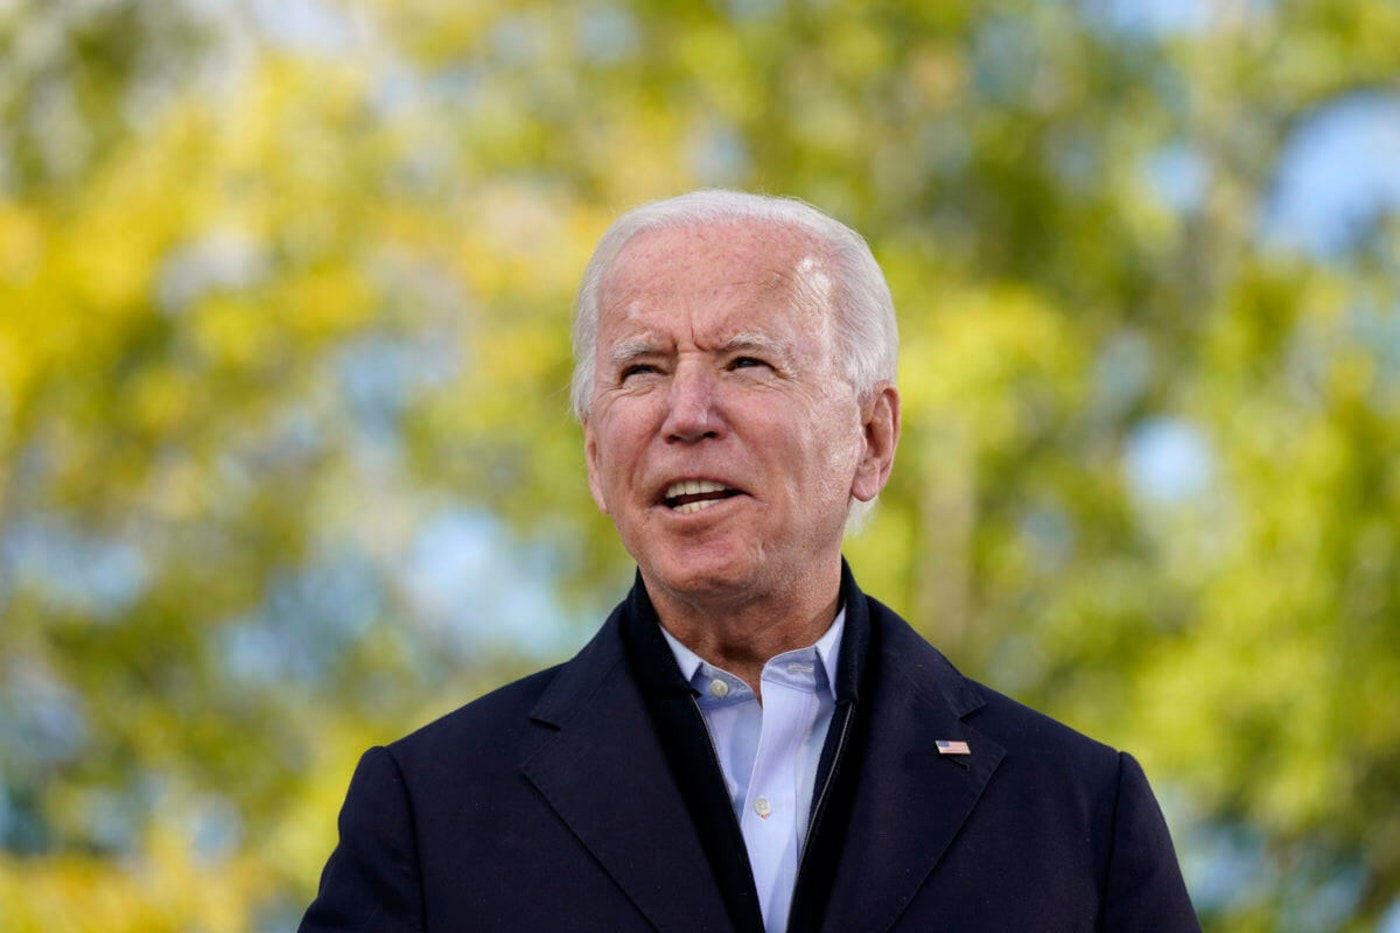 Democratic presidential candidate former Vice President Joe Biden speaks during a roundtable discussion with veterans, Tuesday, Sept. 15, 2020, at Hillsborough Community College in Tampa, Fla. (AP Photo/Patrick Semansky)